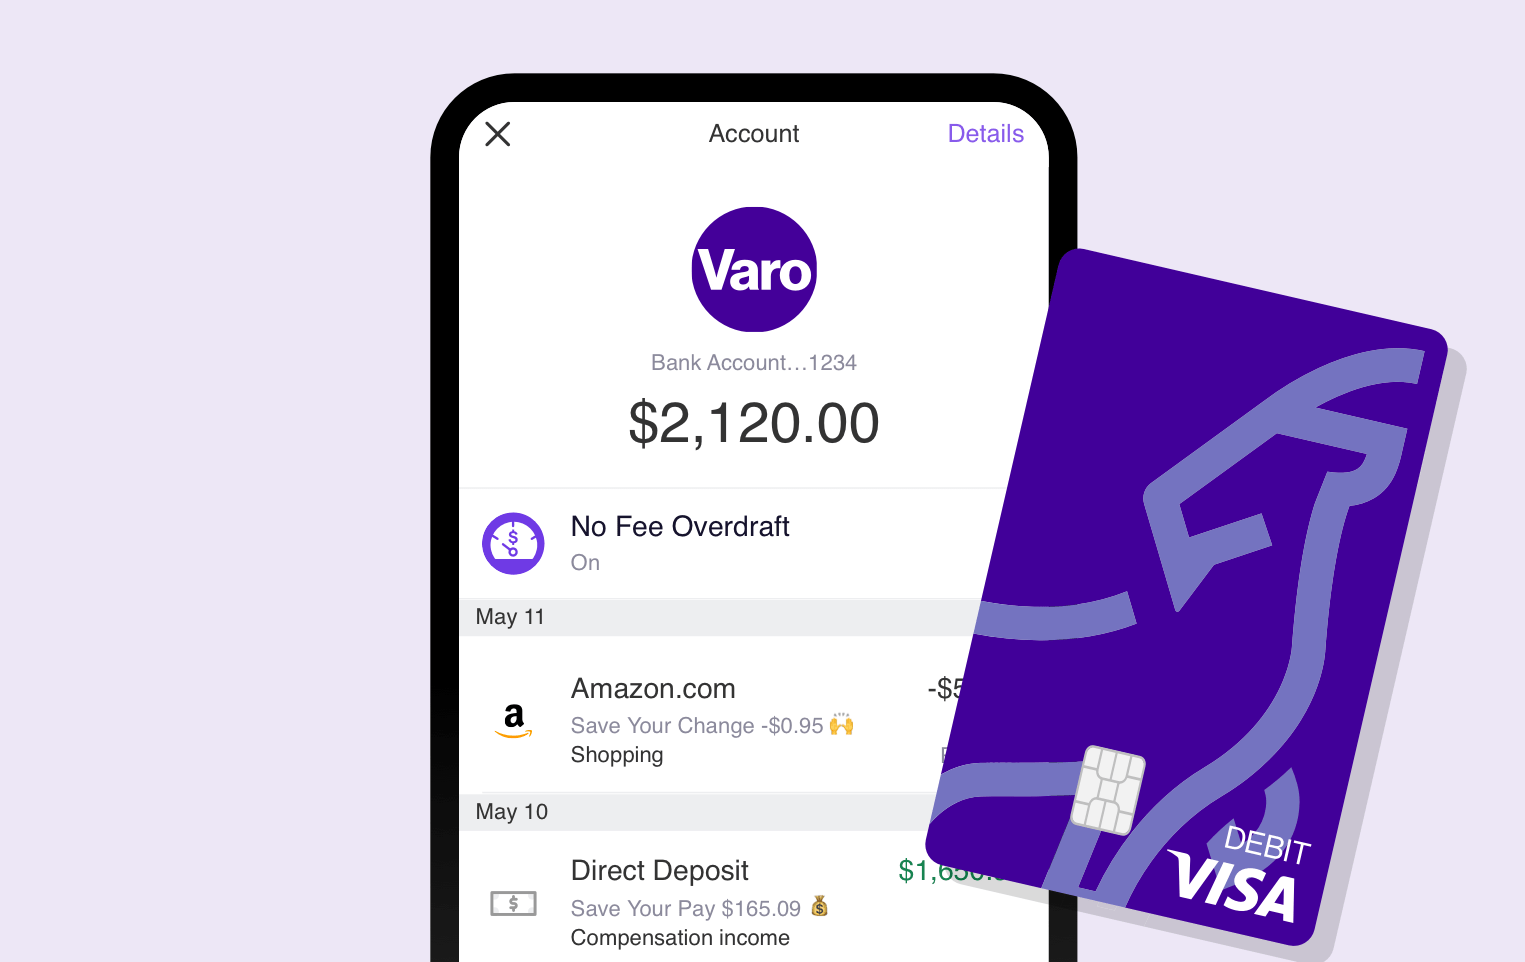 Fintech Varo Wins FDIC Approval To Take Deposits